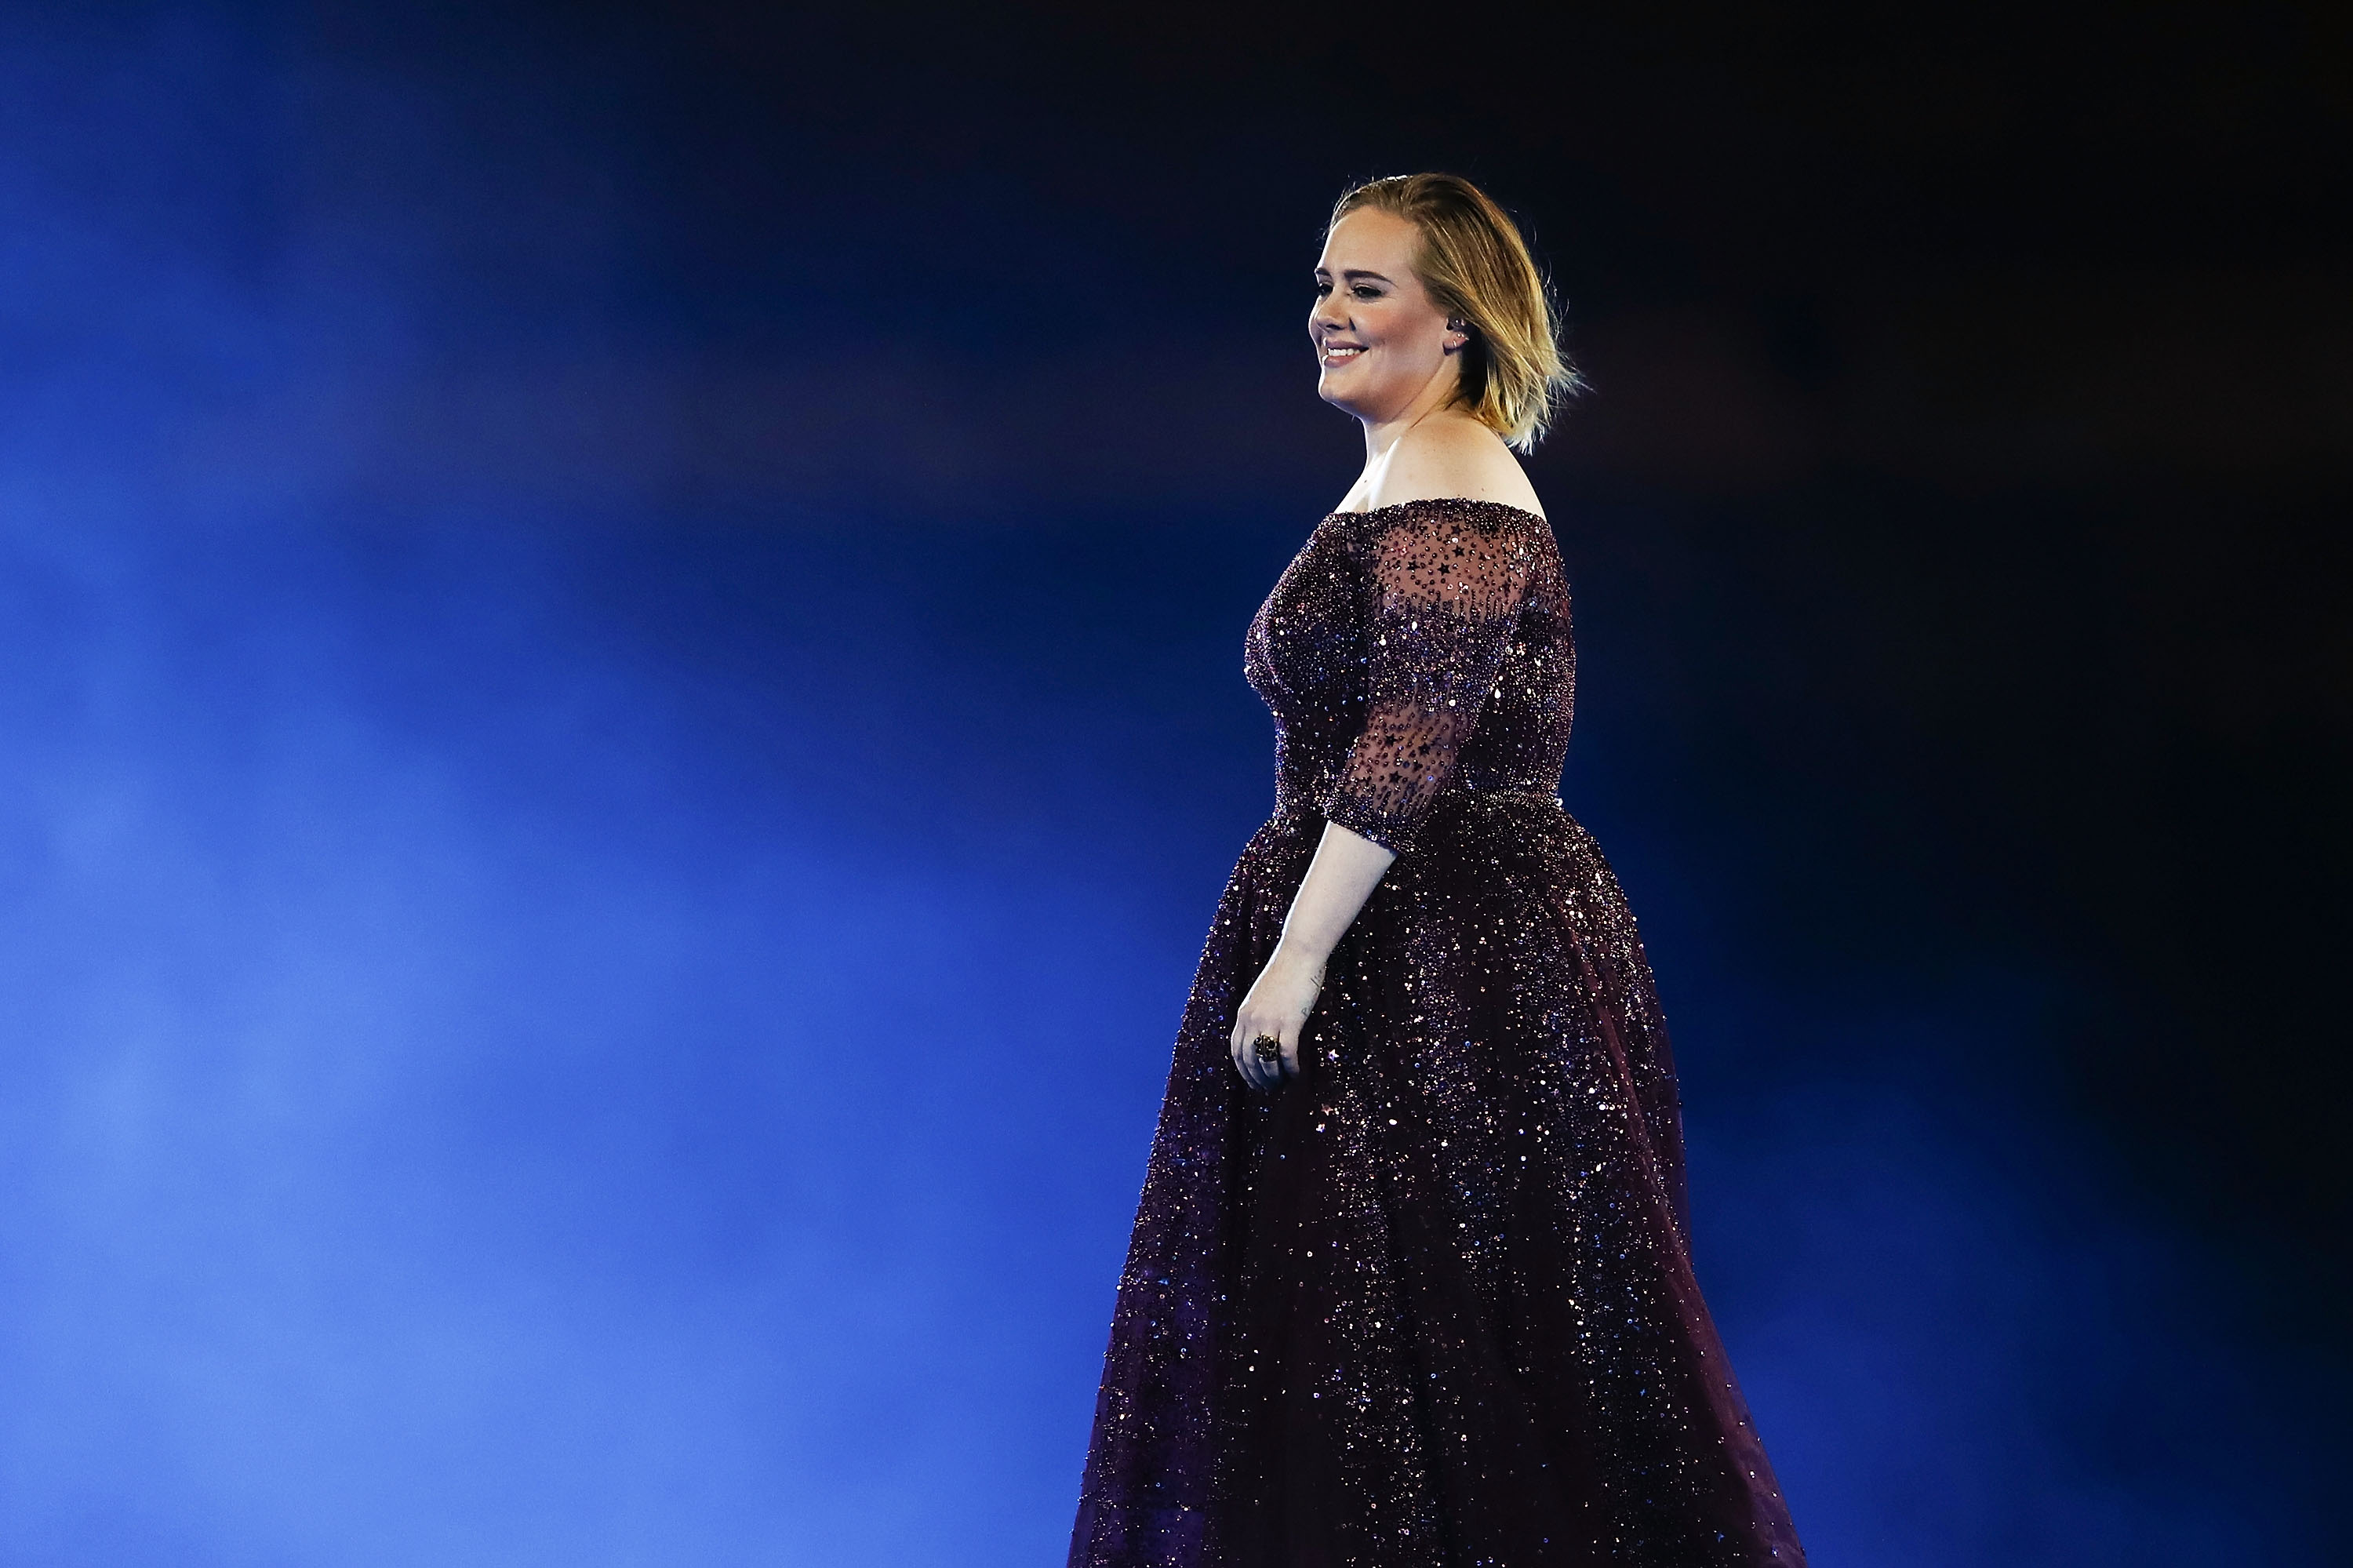 Adele live in concert in gown